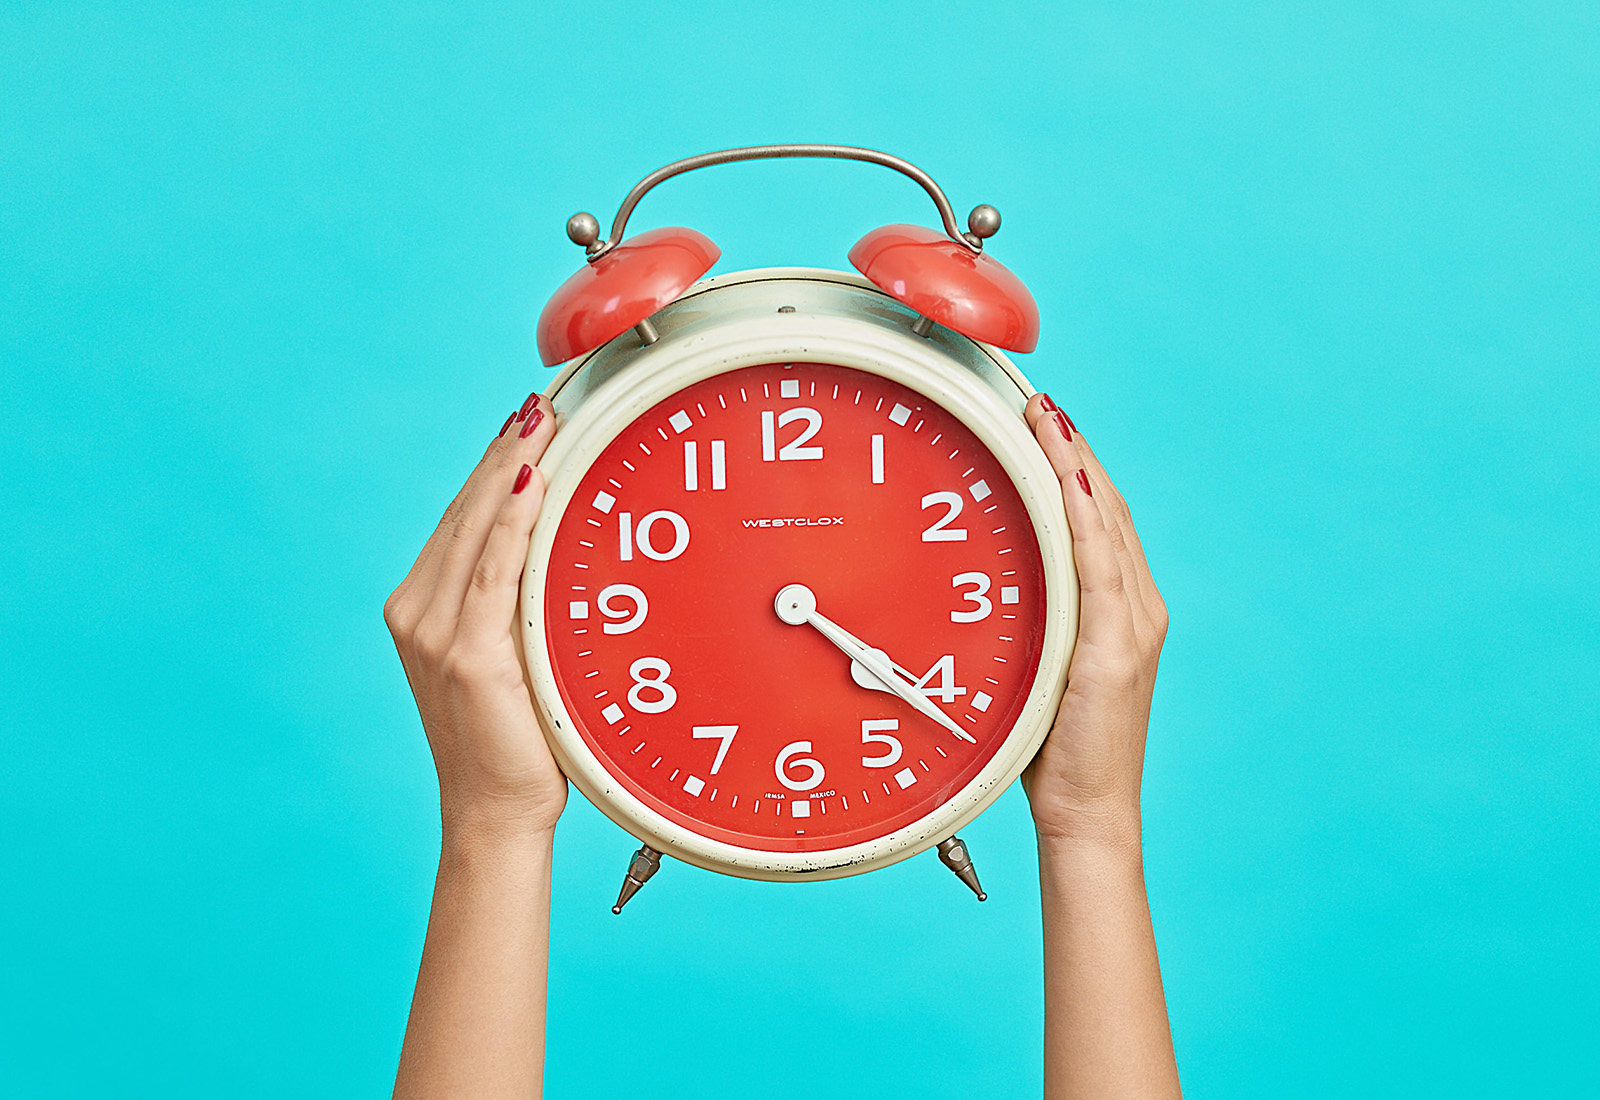 red westclox clock against turquoise background